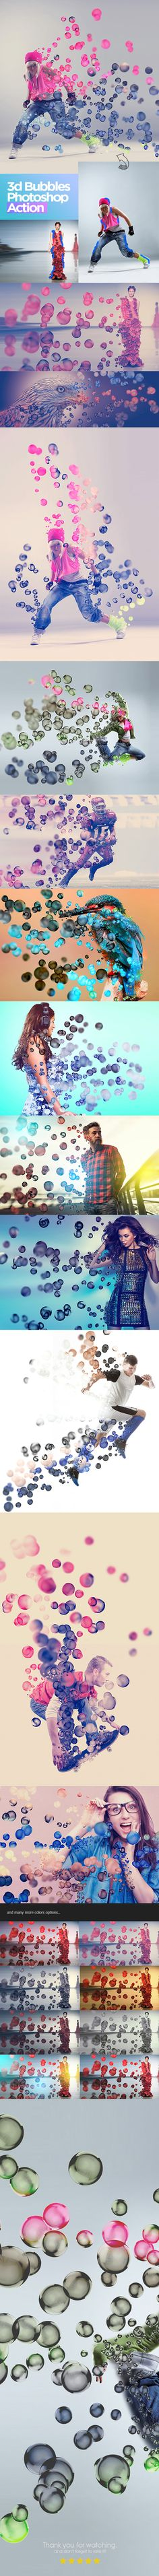 3D Bubbles Photoshop Action - Photo Effects Actions Download here: https://graphicriver.net/item/3d-bubbles-photoshop-action/19772266?ref=classicdesignp